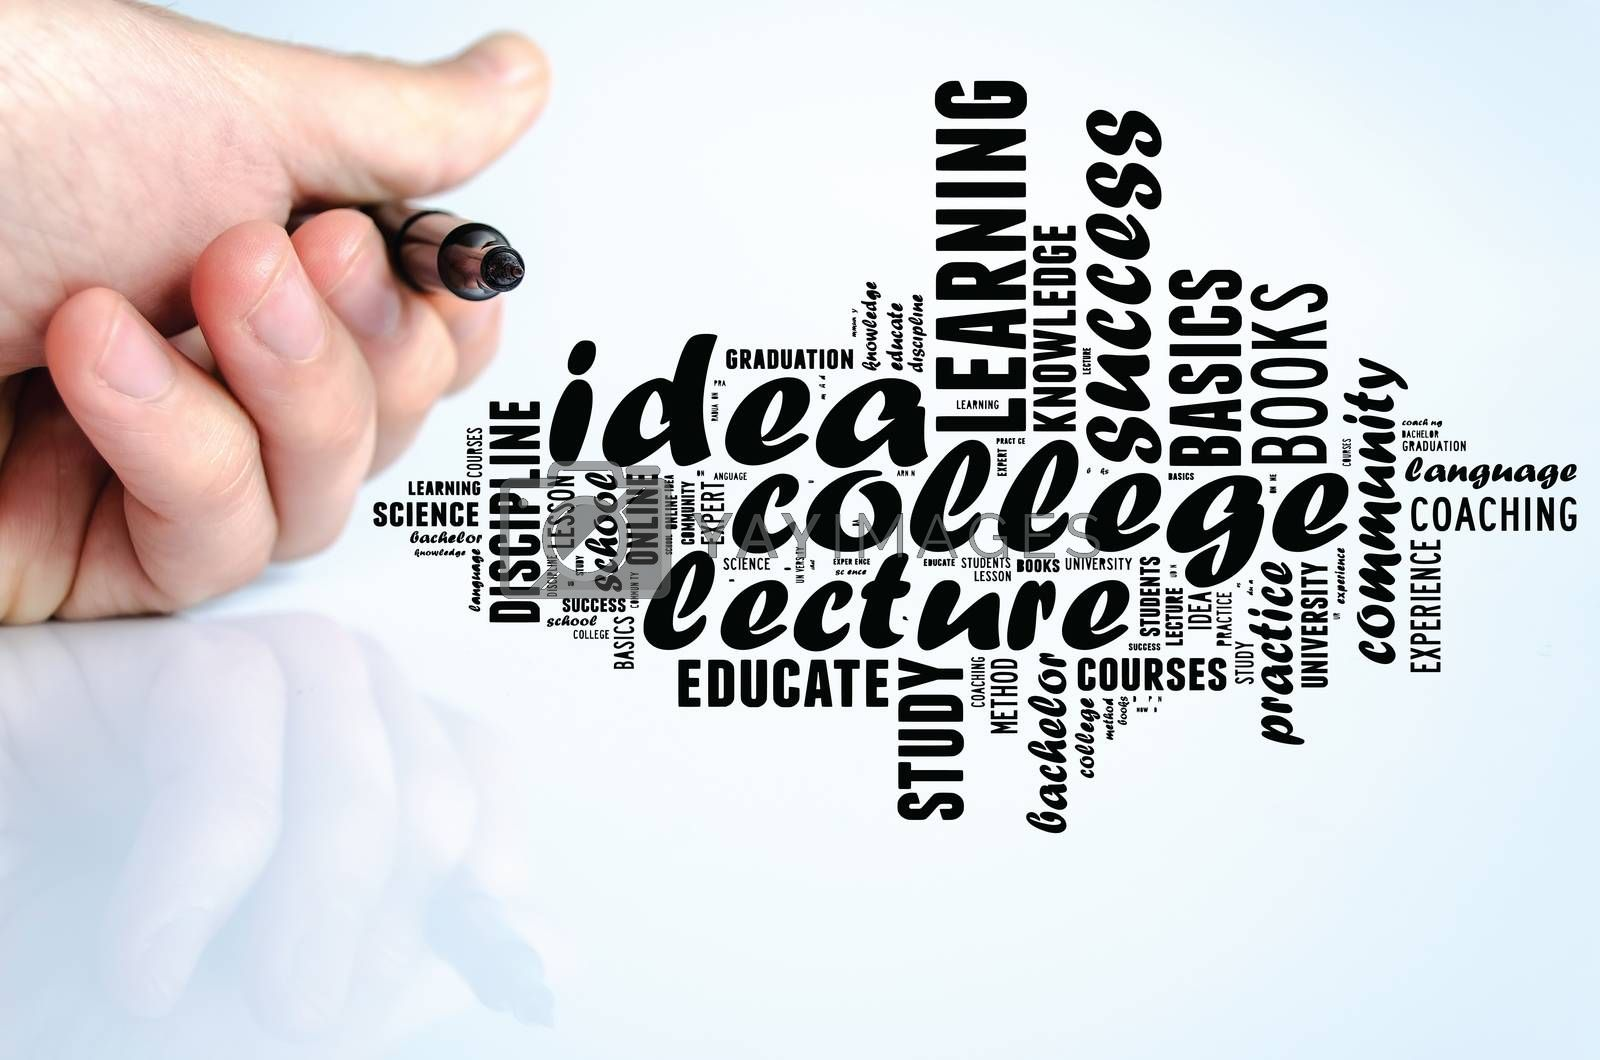 Idea word cloud collage over white background